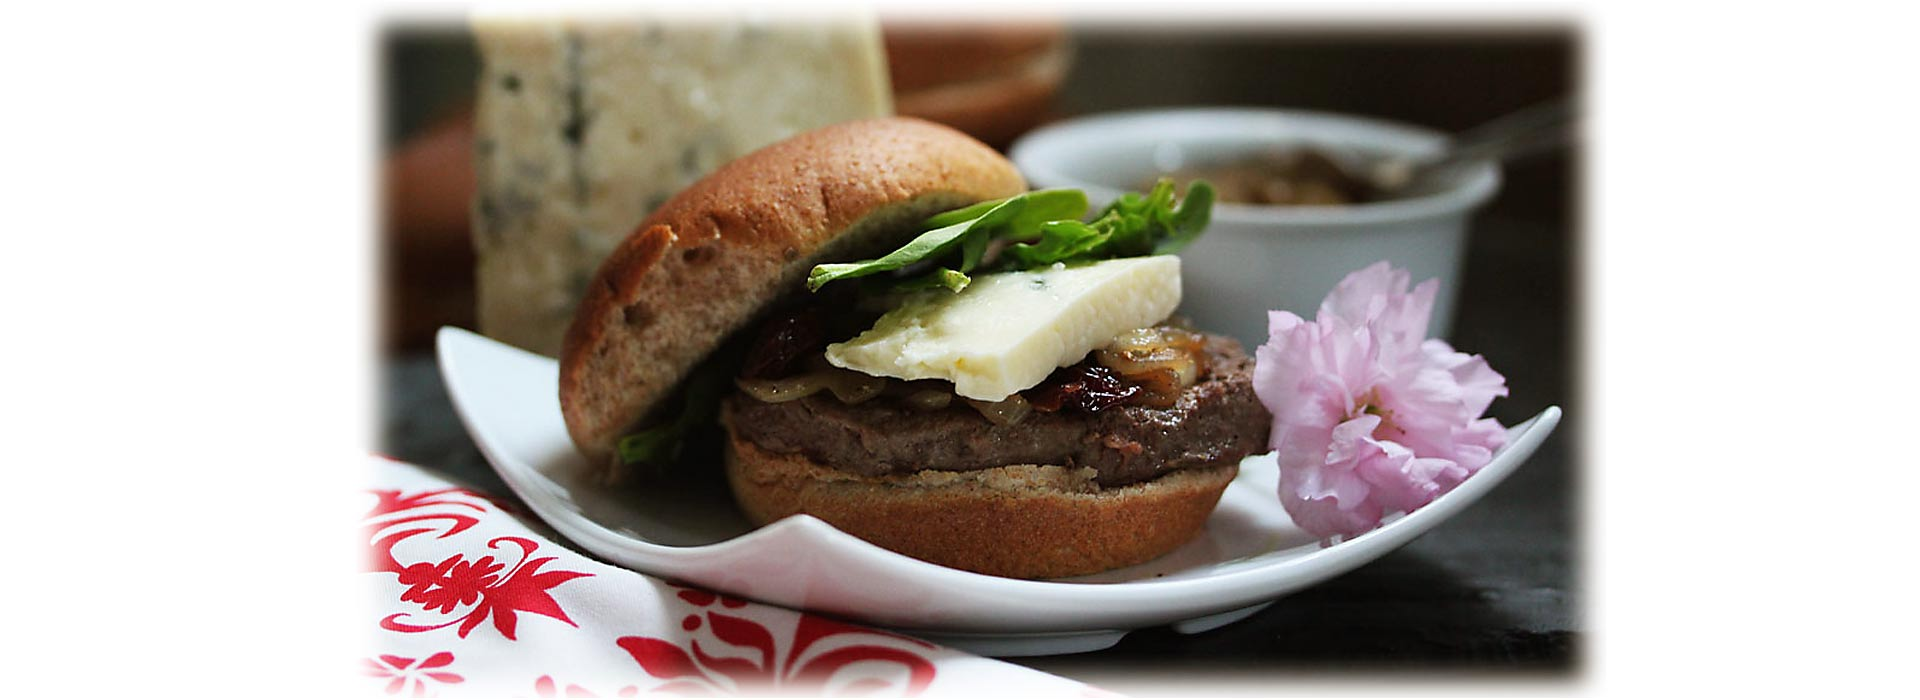 Blue Cheese Burger with Cherry-Onion Relish